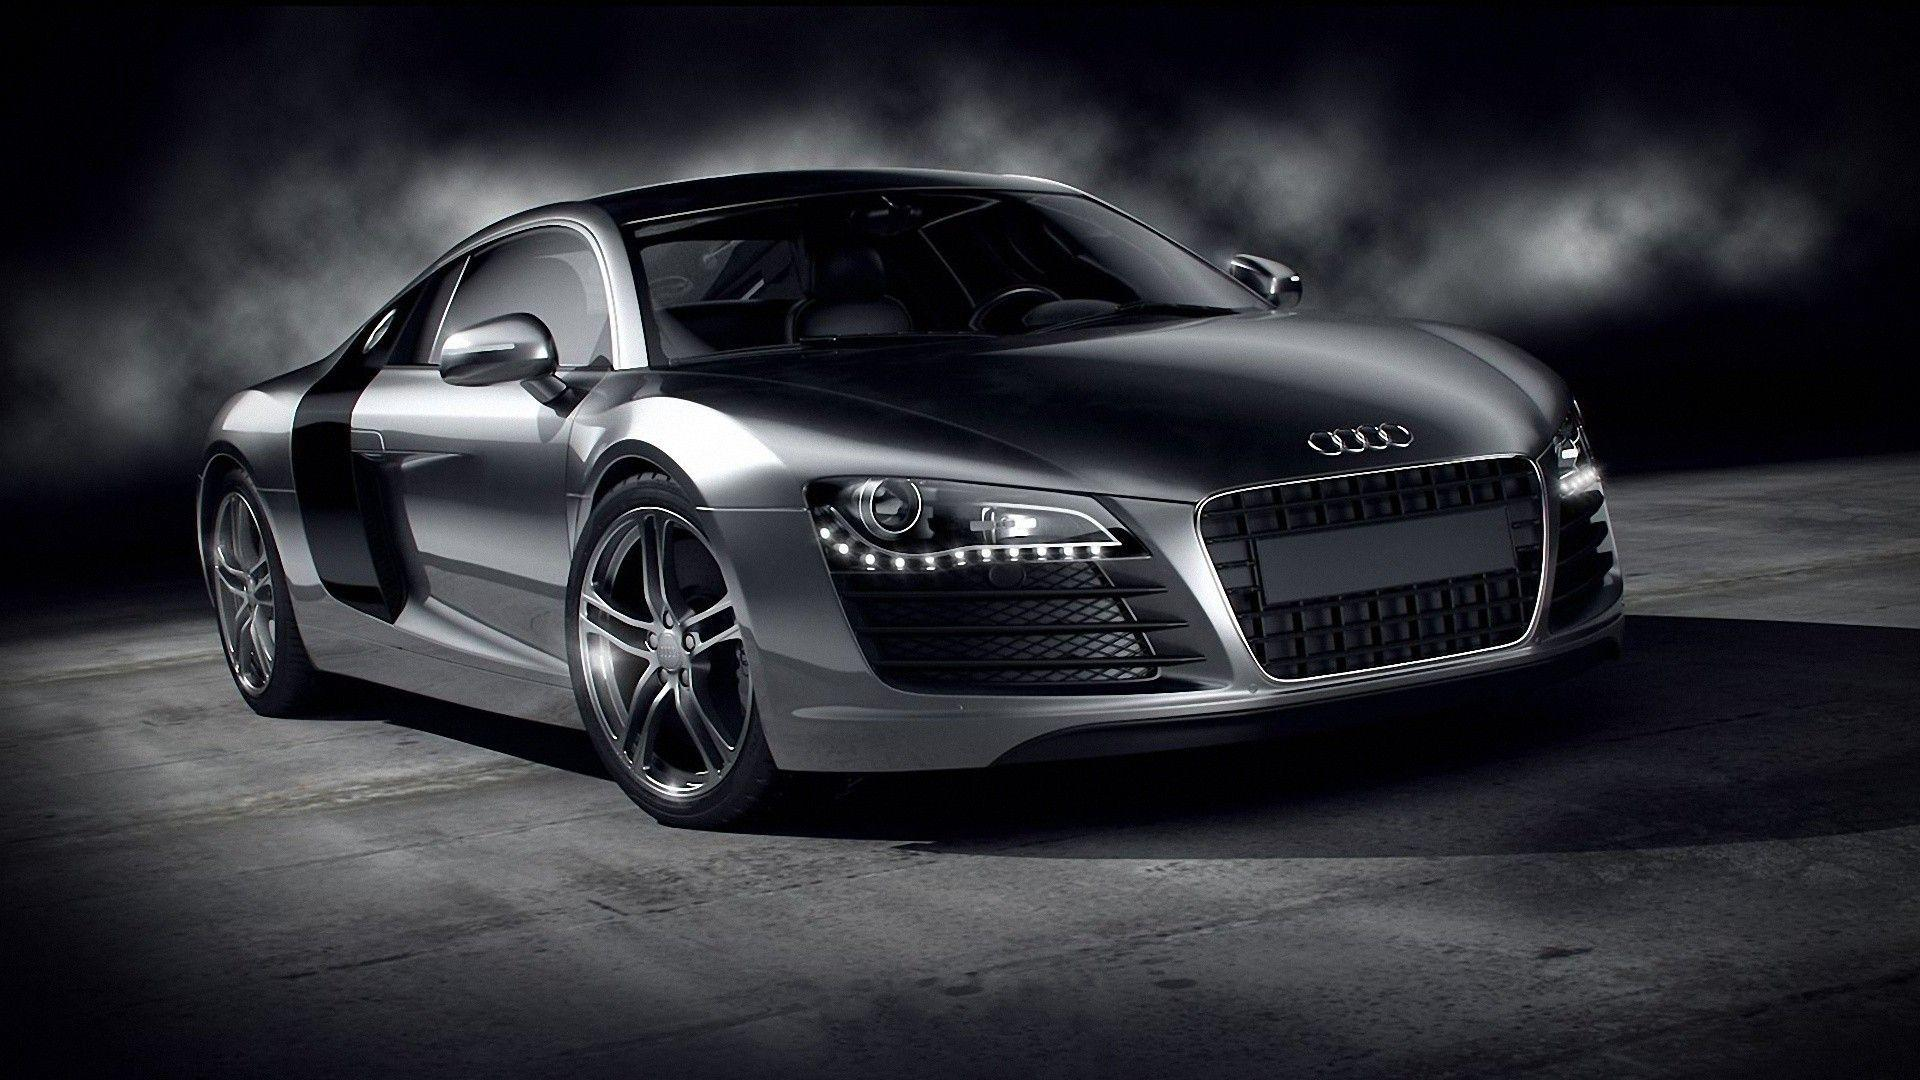 Cars Audi Roads R8 White V10 Wallpaper Allwallpaper In: Audi R8 Wallpapers HD